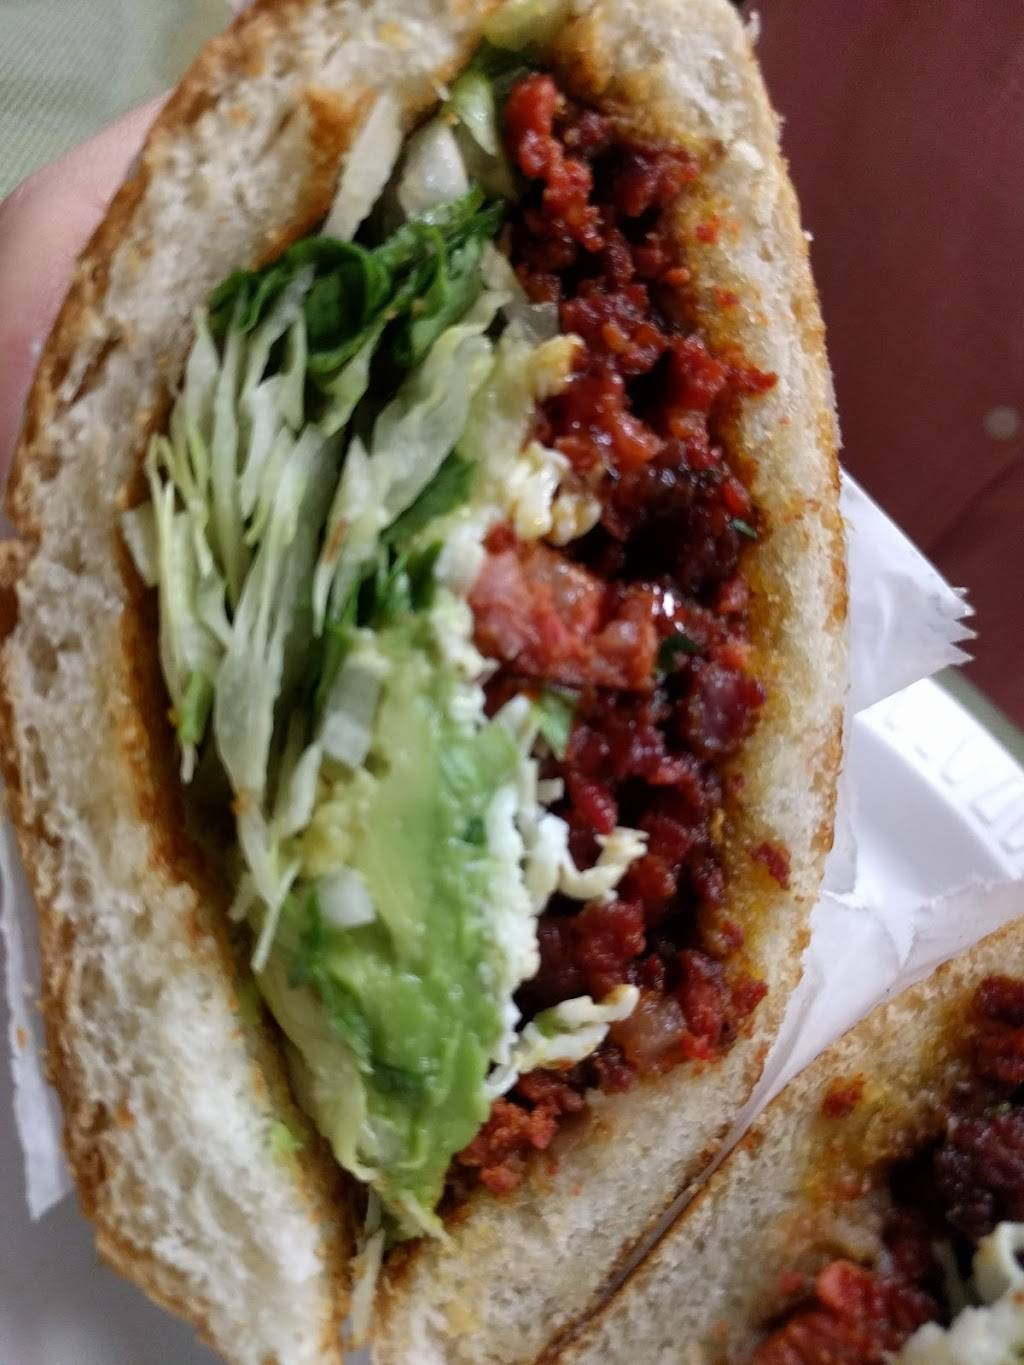 El Don Taqueria & Grocery   restaurant   53-24 Roosevelt Ave, Woodside, NY 11377, USA   9177450288 OR +1 917-745-0288